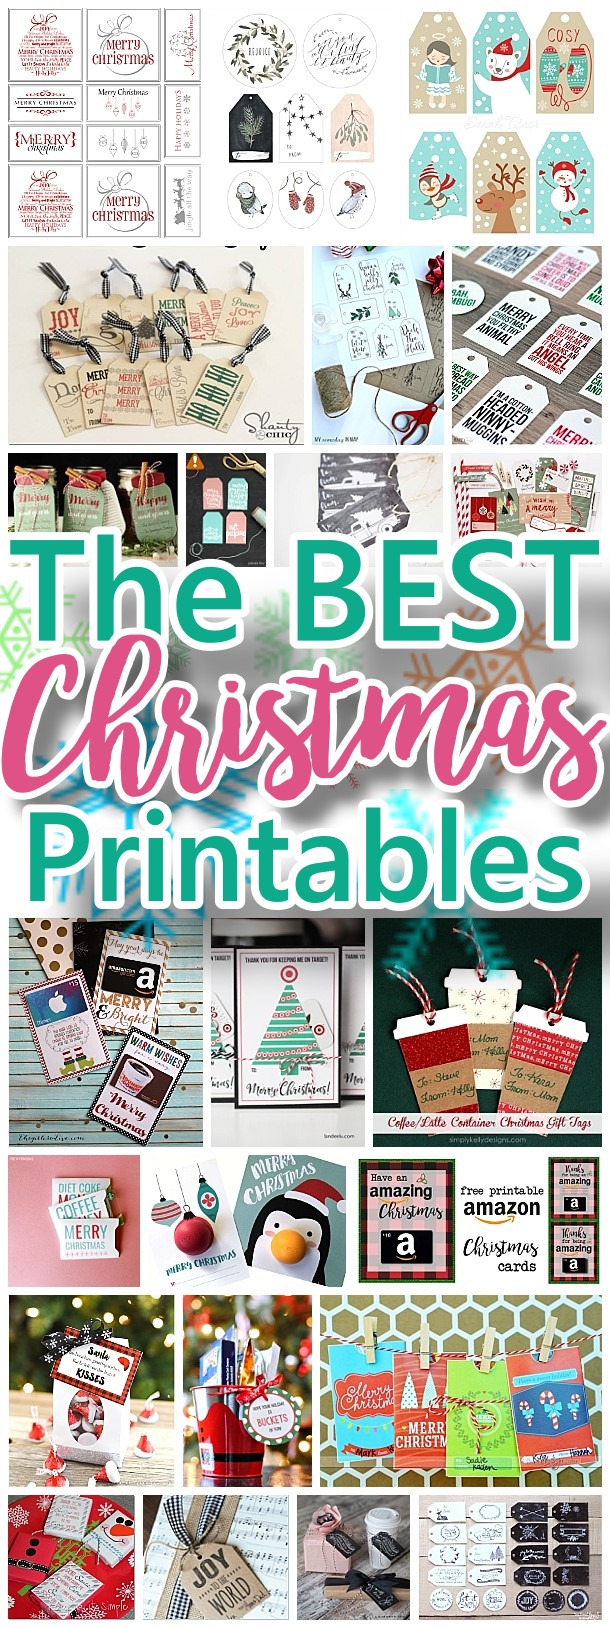 The BEST FREE Christmas Printables – Gift Tags, Holiday Greeting Cards, Gift Card Holders and more fun downloadable paper craft winter freebies!